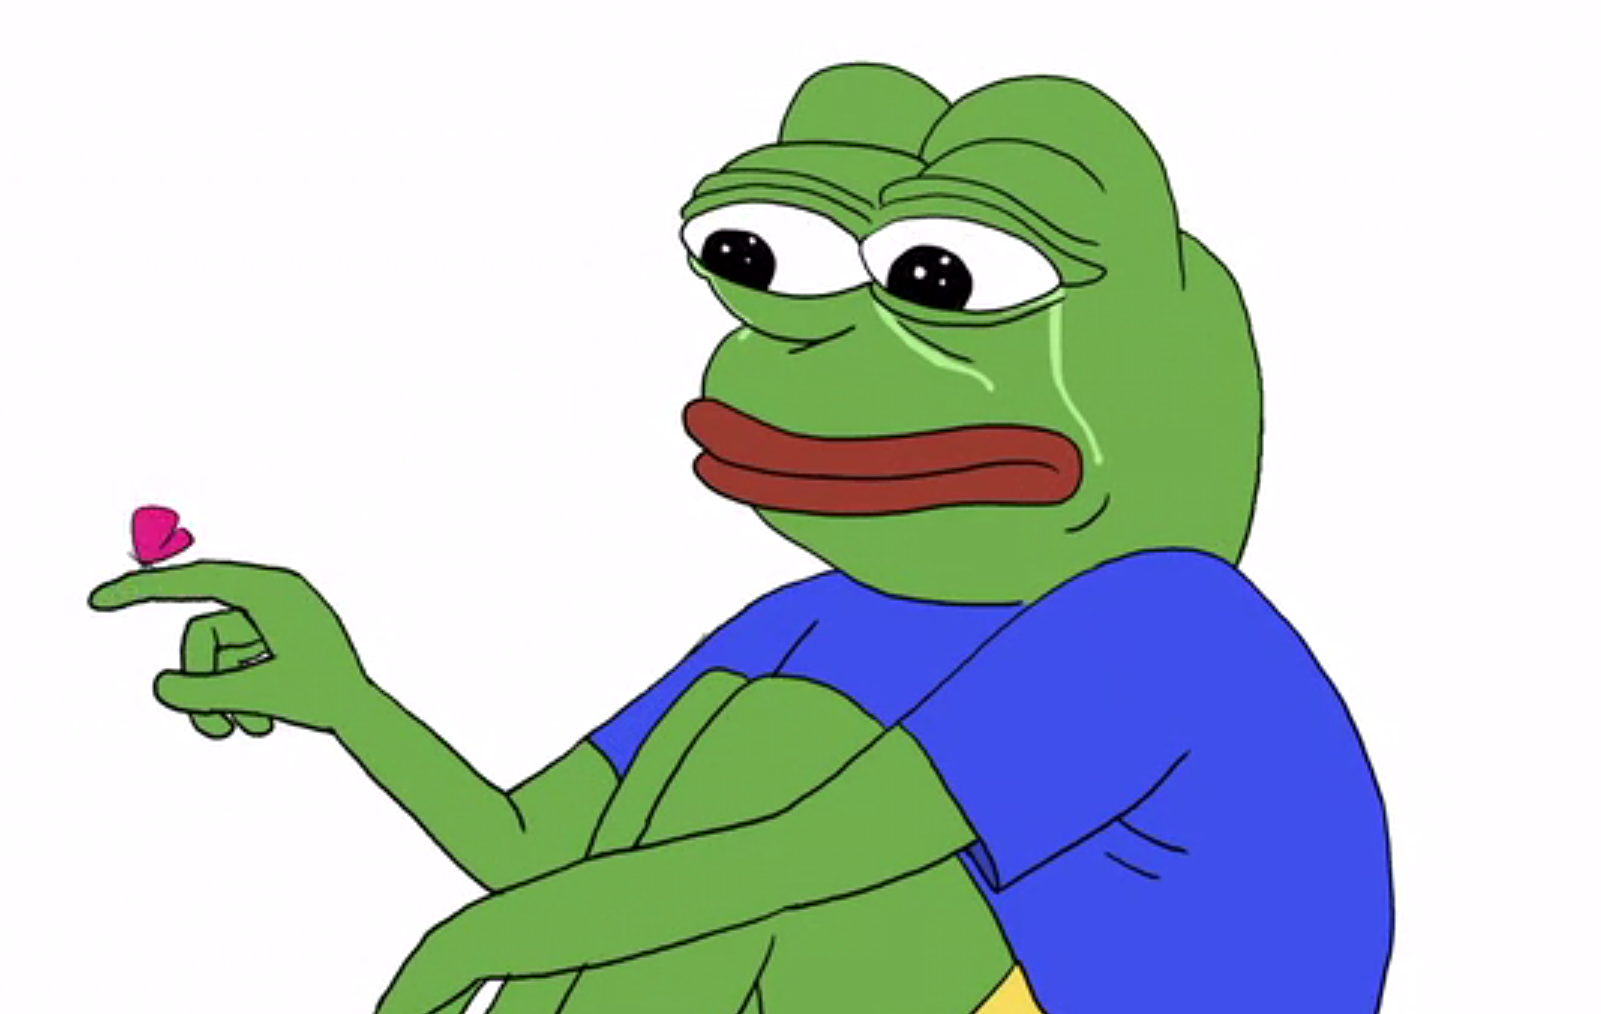 New Pepe zine hopes to reestablish the cartoon frog as a symbol of love and acceptance